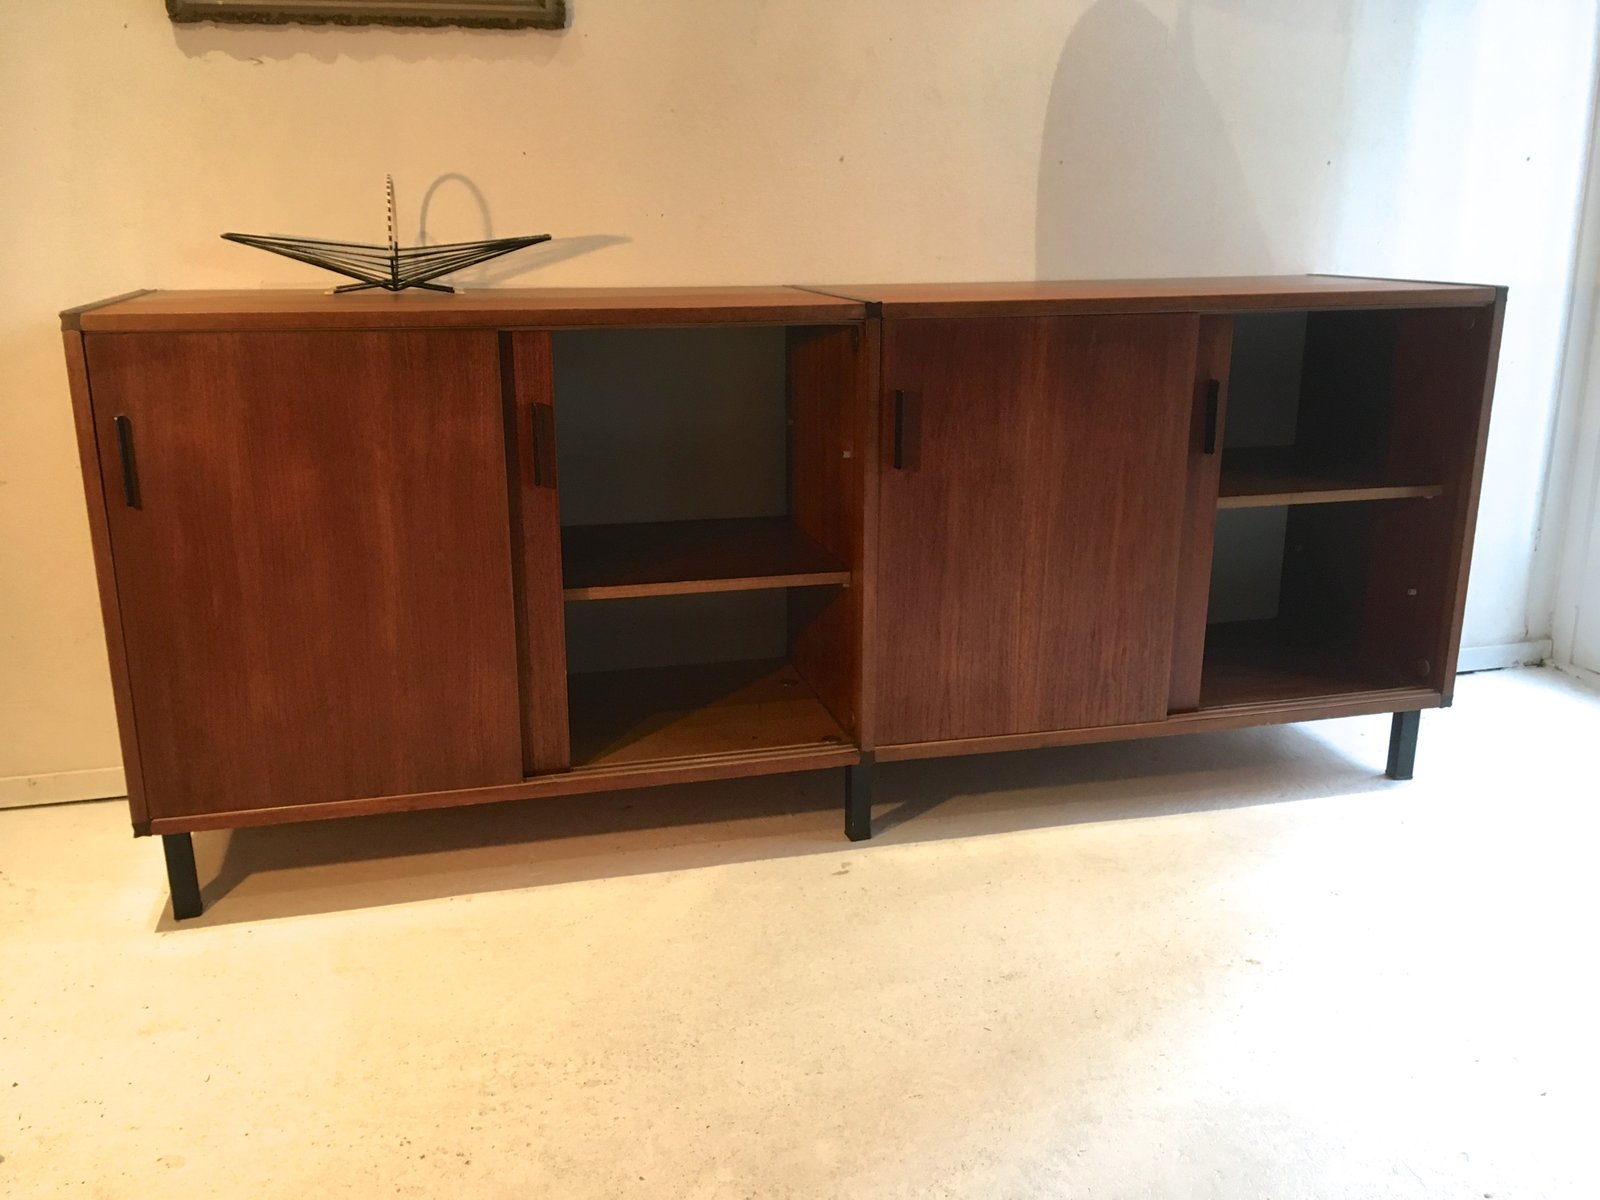 vintage teak sideboard mit schiebet ren von cees braakman f r pastoe bei pamono kaufen. Black Bedroom Furniture Sets. Home Design Ideas